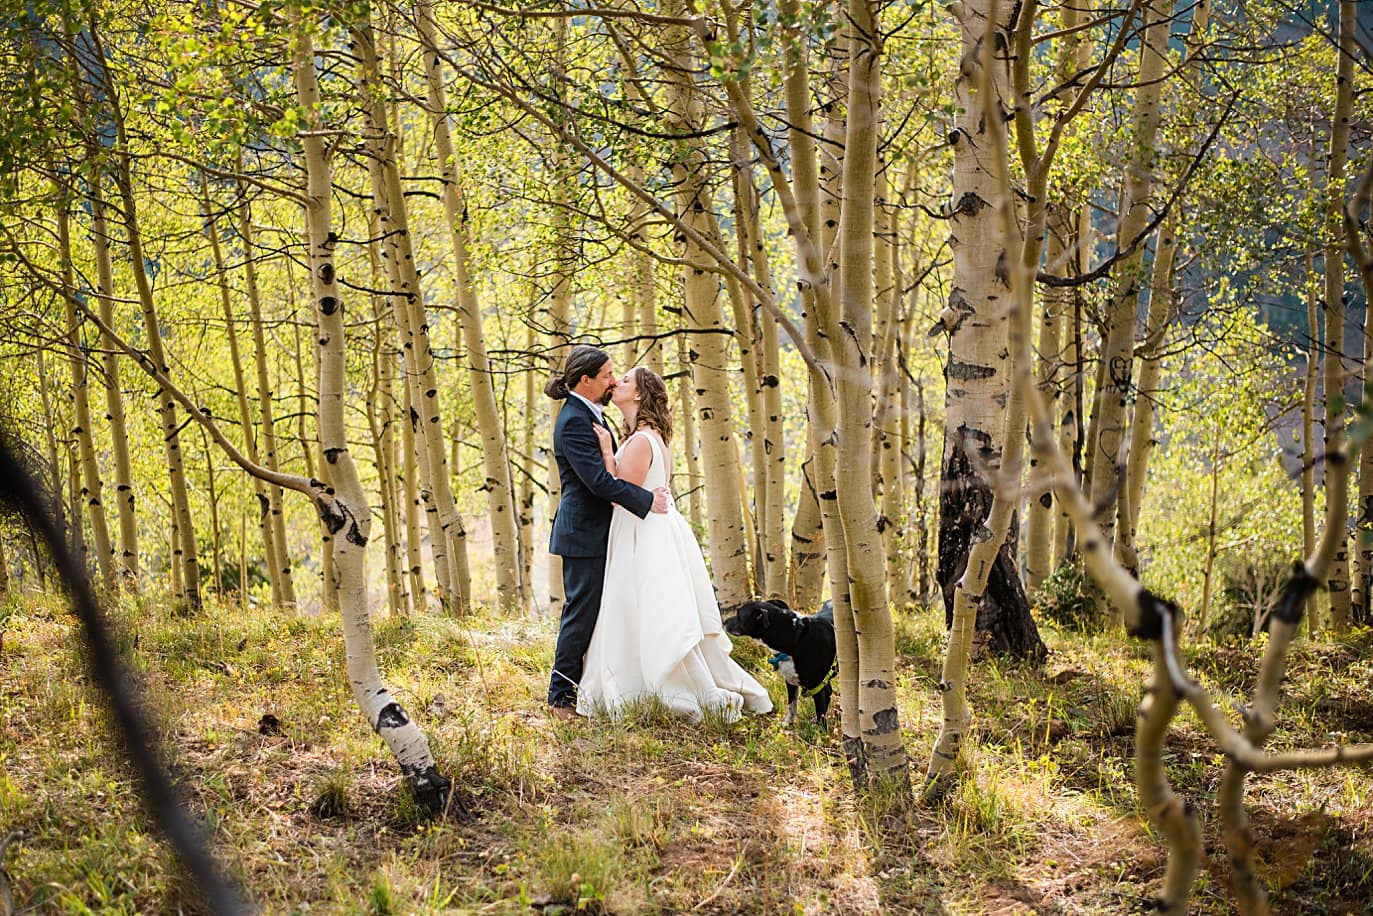 bride and groom in aspen trees after ceremony in Colorado by Colorado wedding photographer Jennie Crate